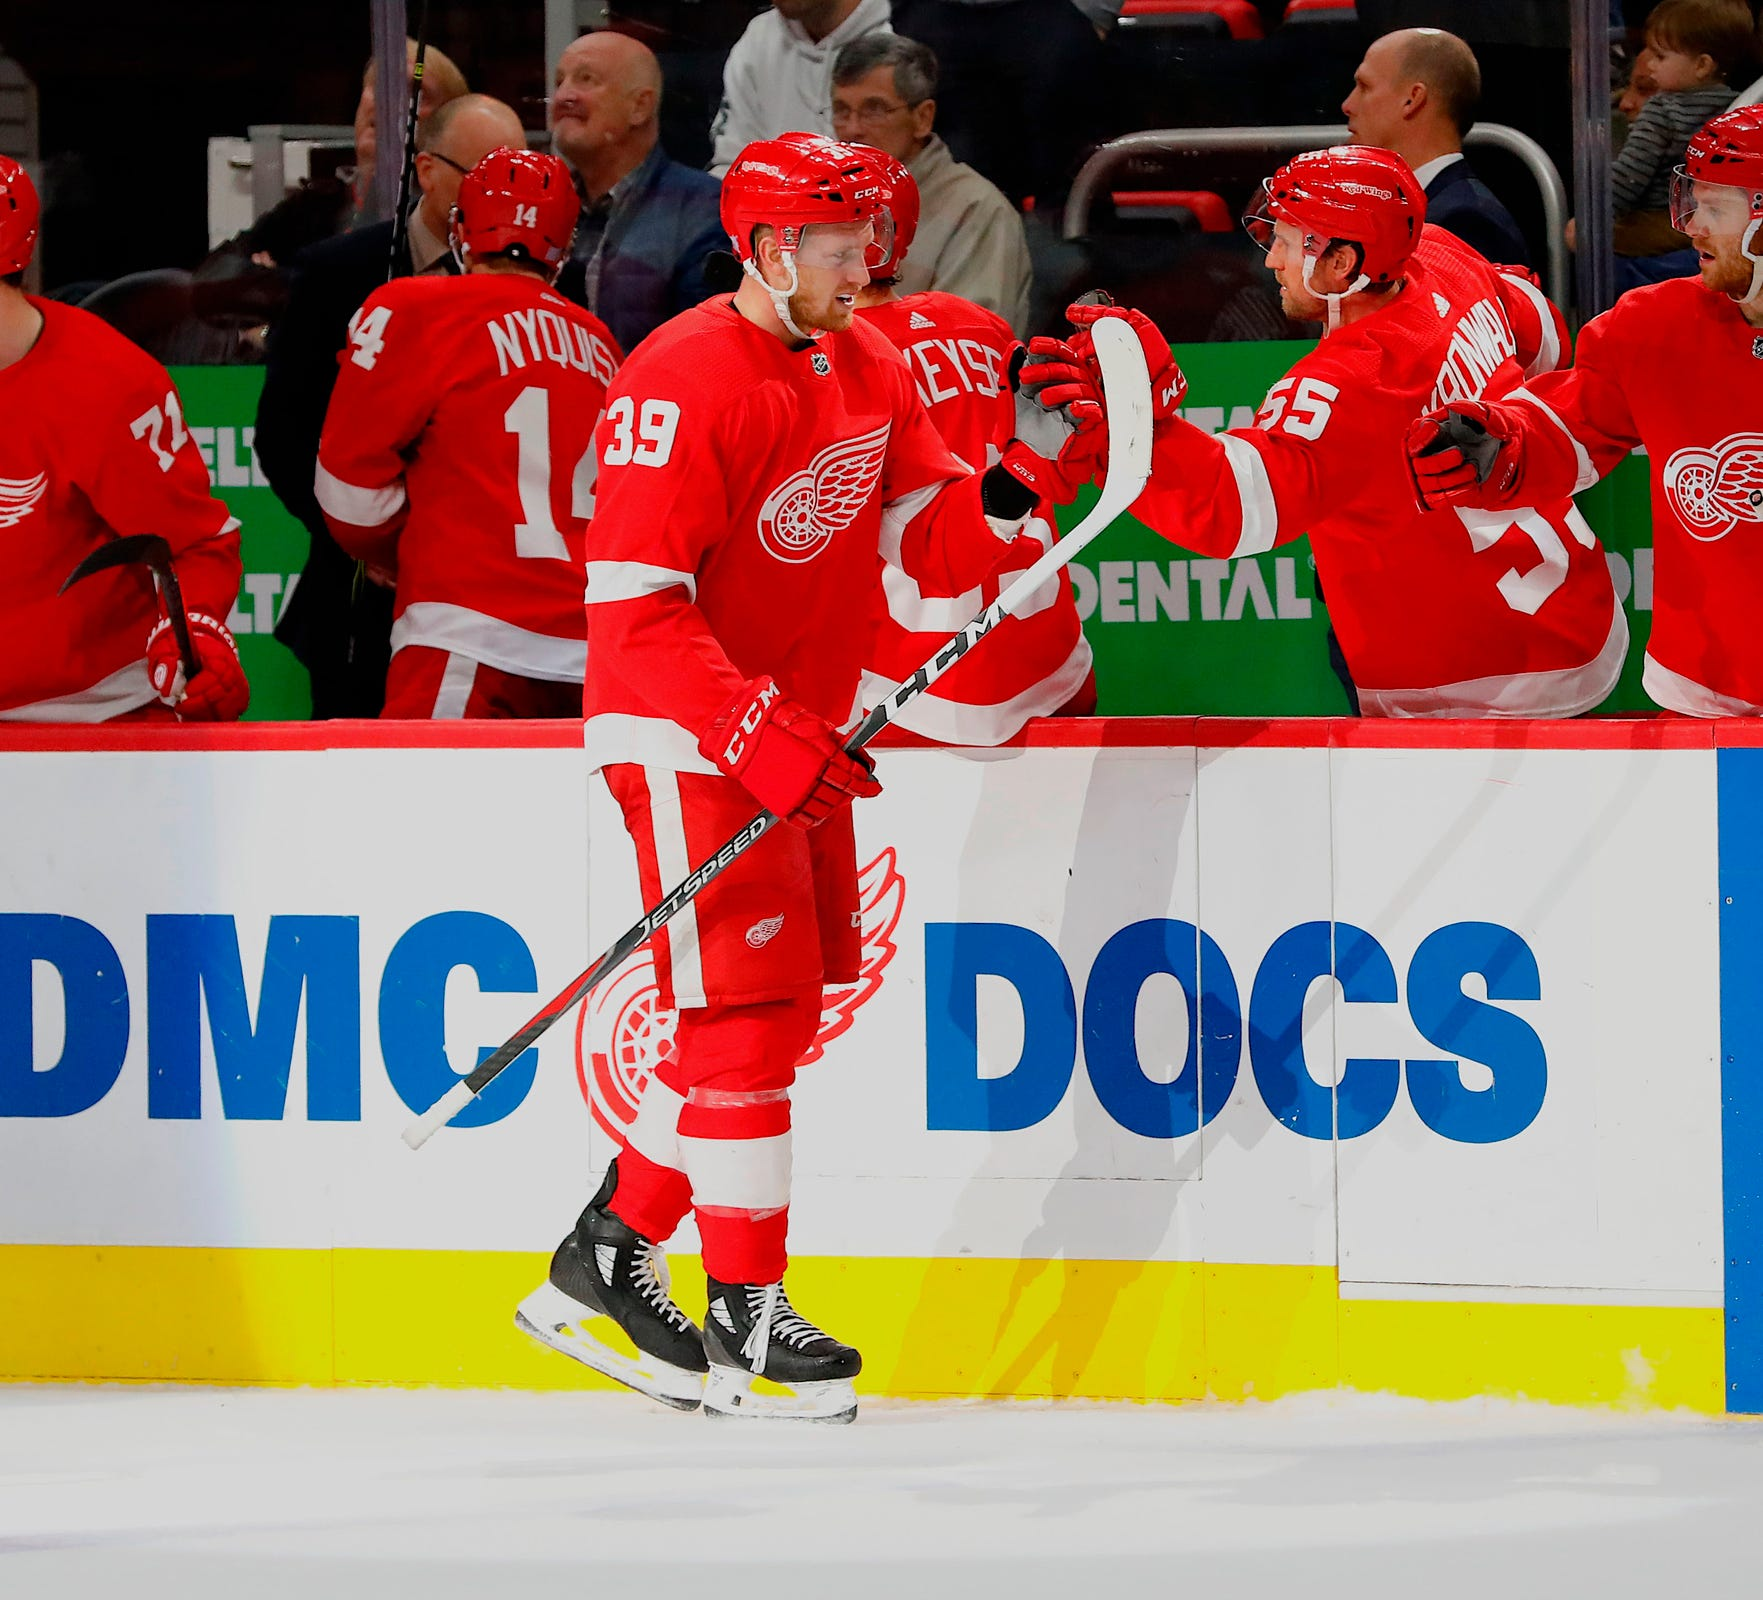 Red Wings right wing Anthony Mantha is congratulated by teammates after scoring in the third period of the Wings' 7-5 loss to the Blue Jackets on Monday, Nov. 26, 2018, at Little Caesars Arena.